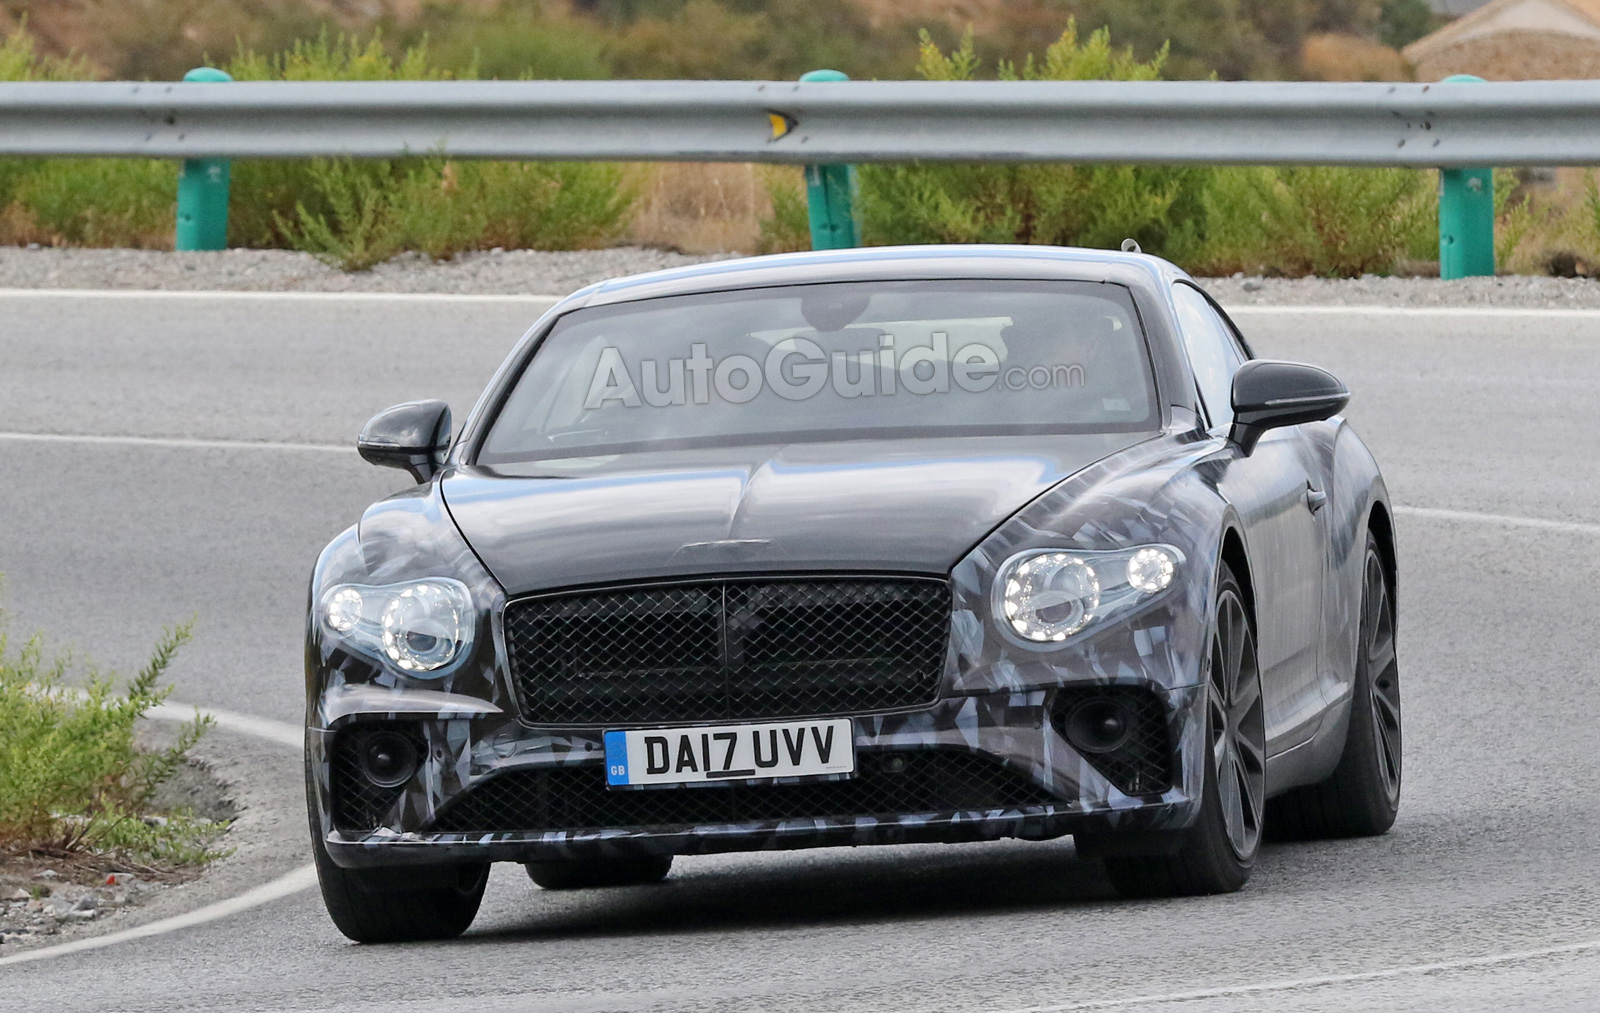 Bentley unveils details of third-generation Continental GT auto